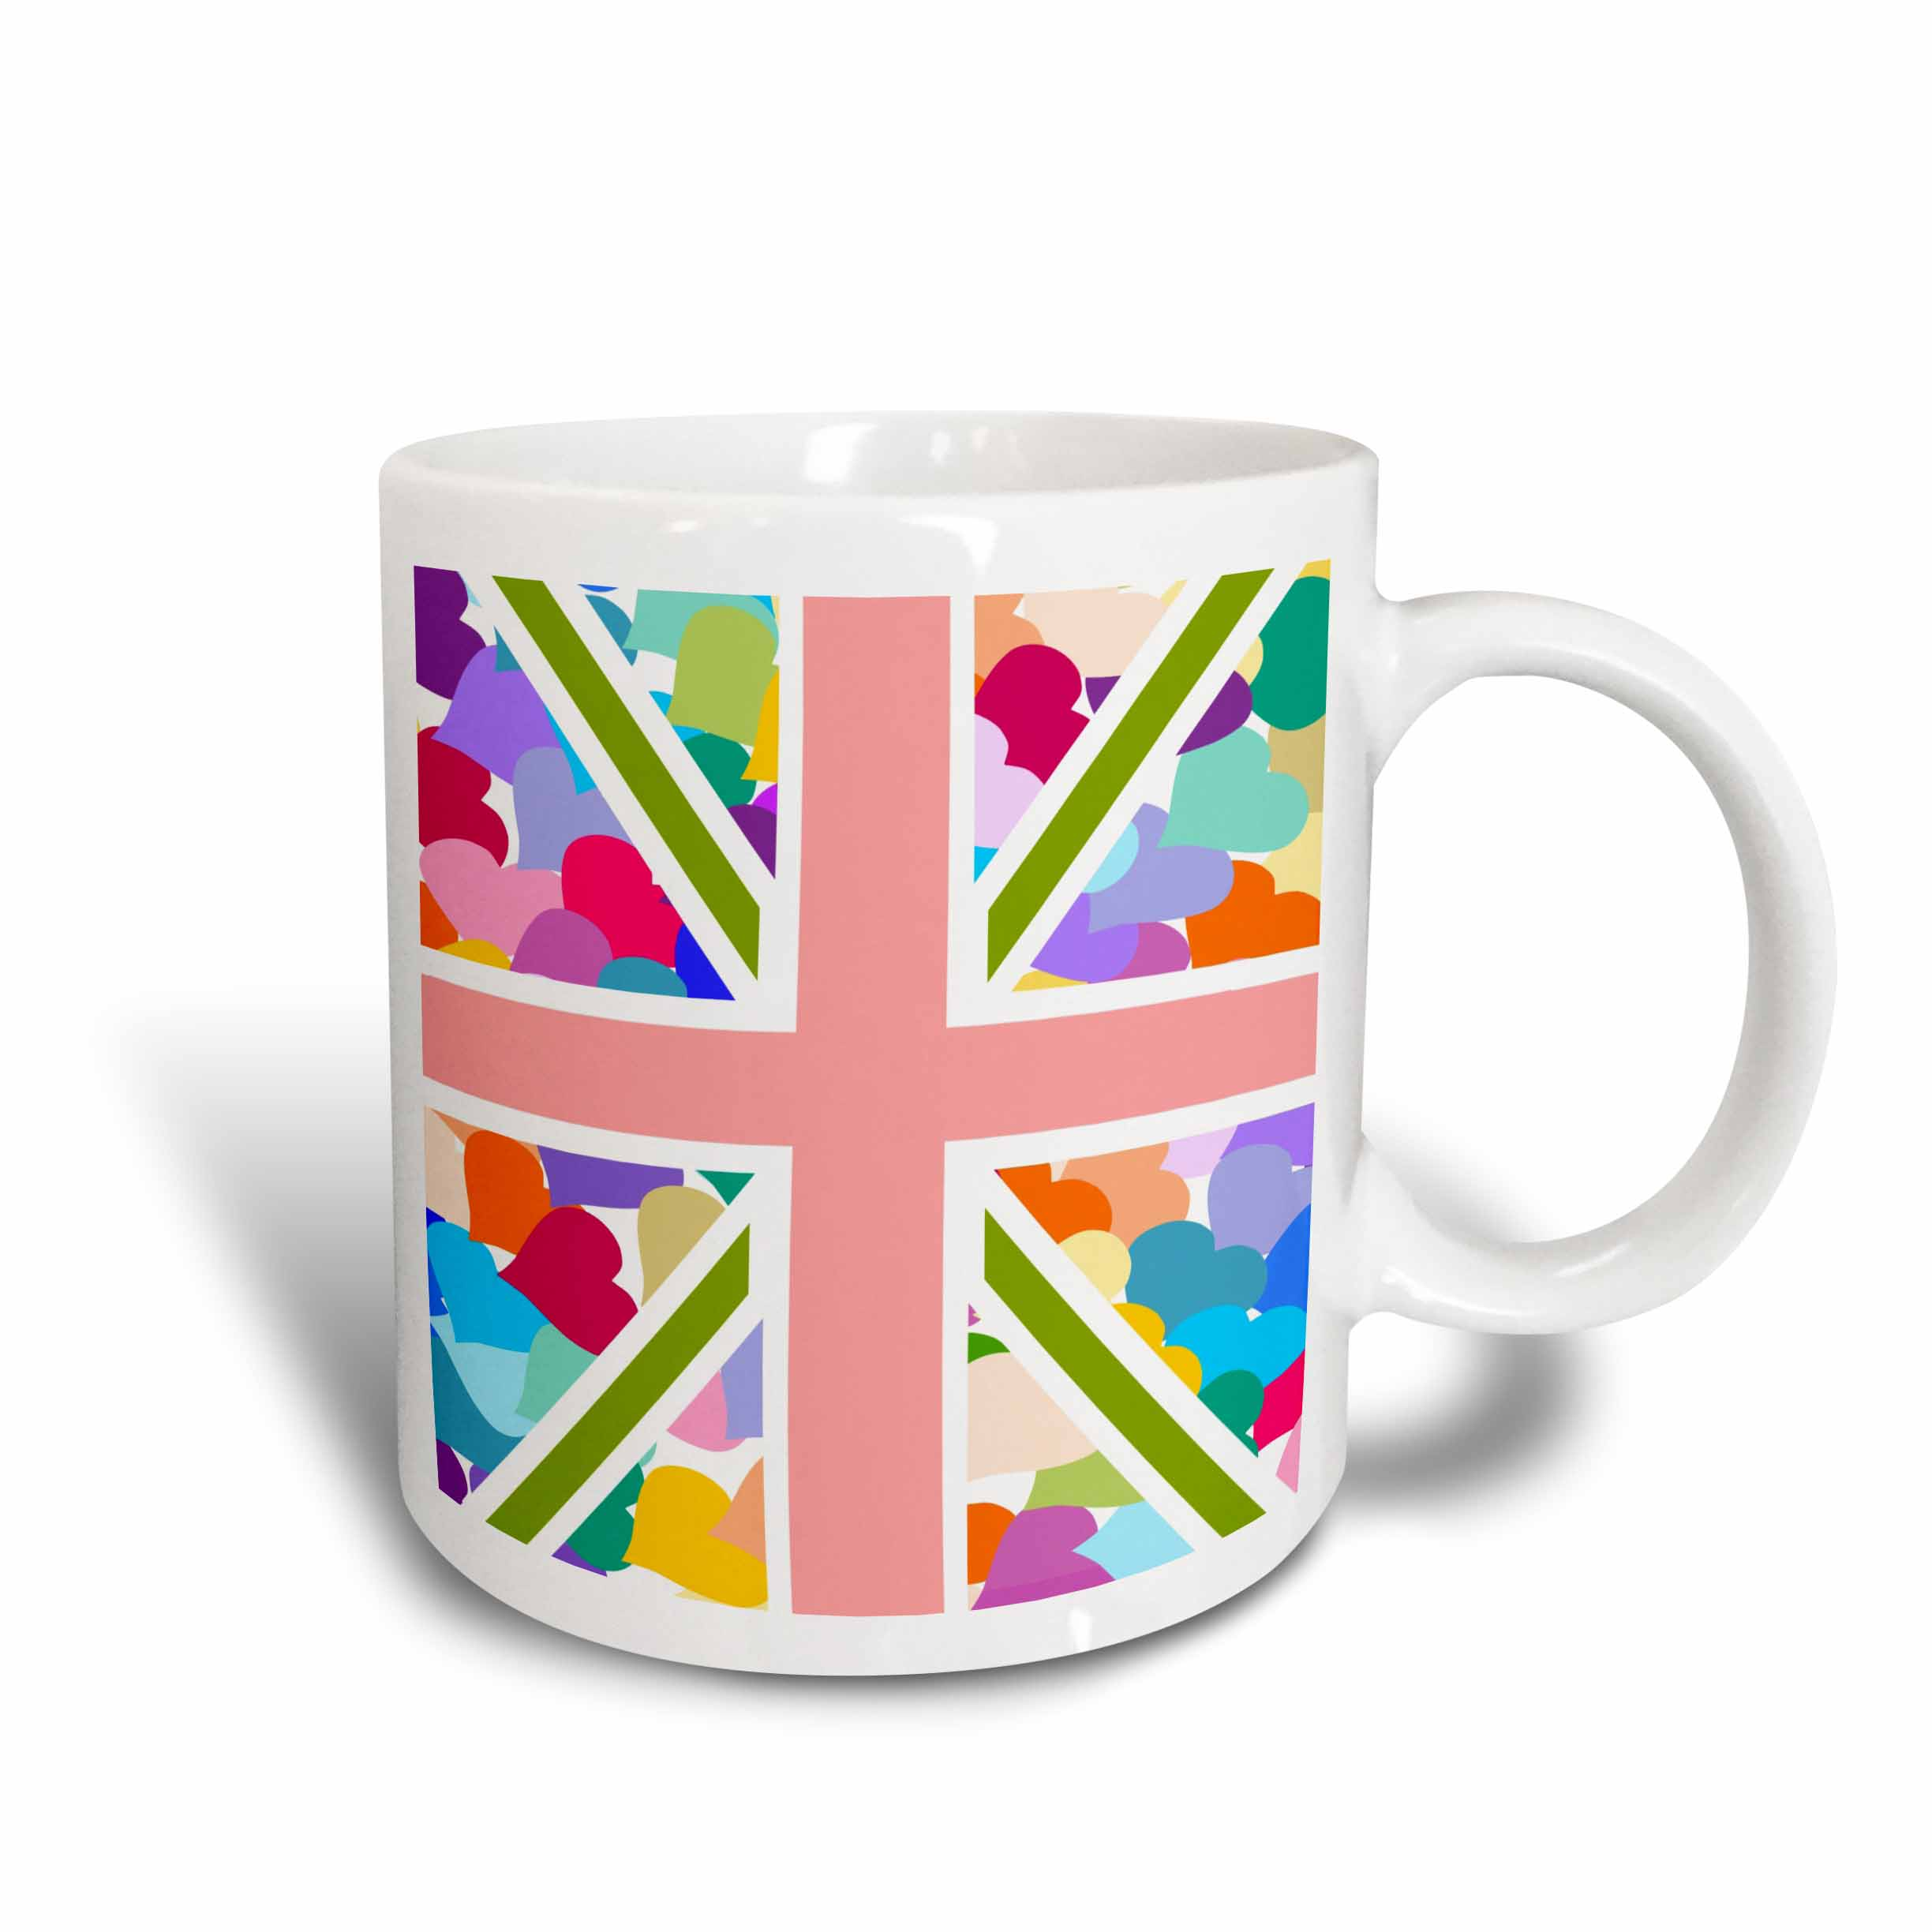 3dRose Colorful Cute Hearts Pattern Union Jack English Flag - Girly Great Britain United Kingdom England, Ceramic Mug, 15-ounce